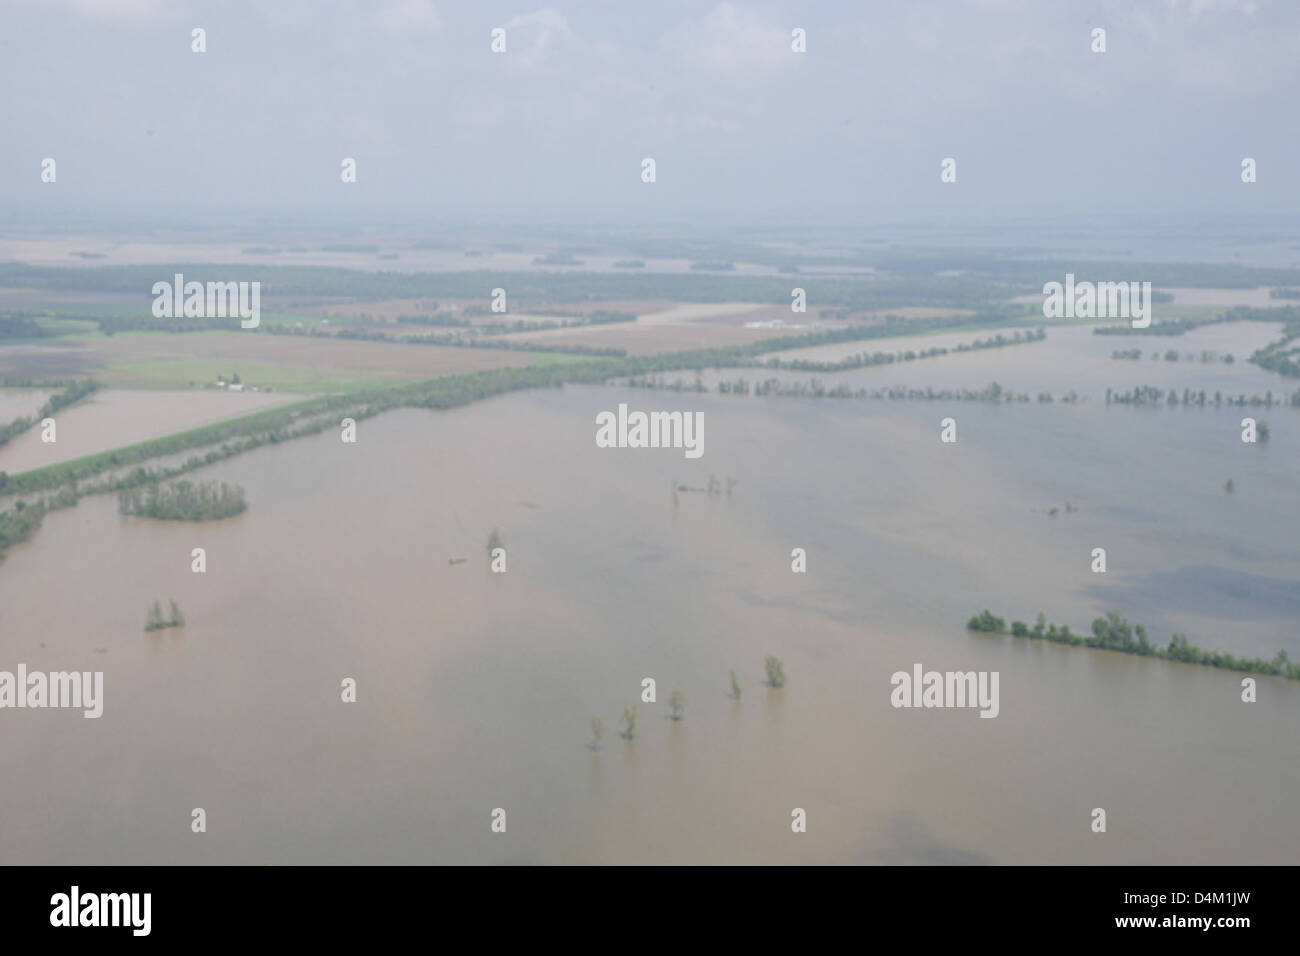 Flooding near Cairo, Ill., and Bird's Point, Mo. Stock Photo